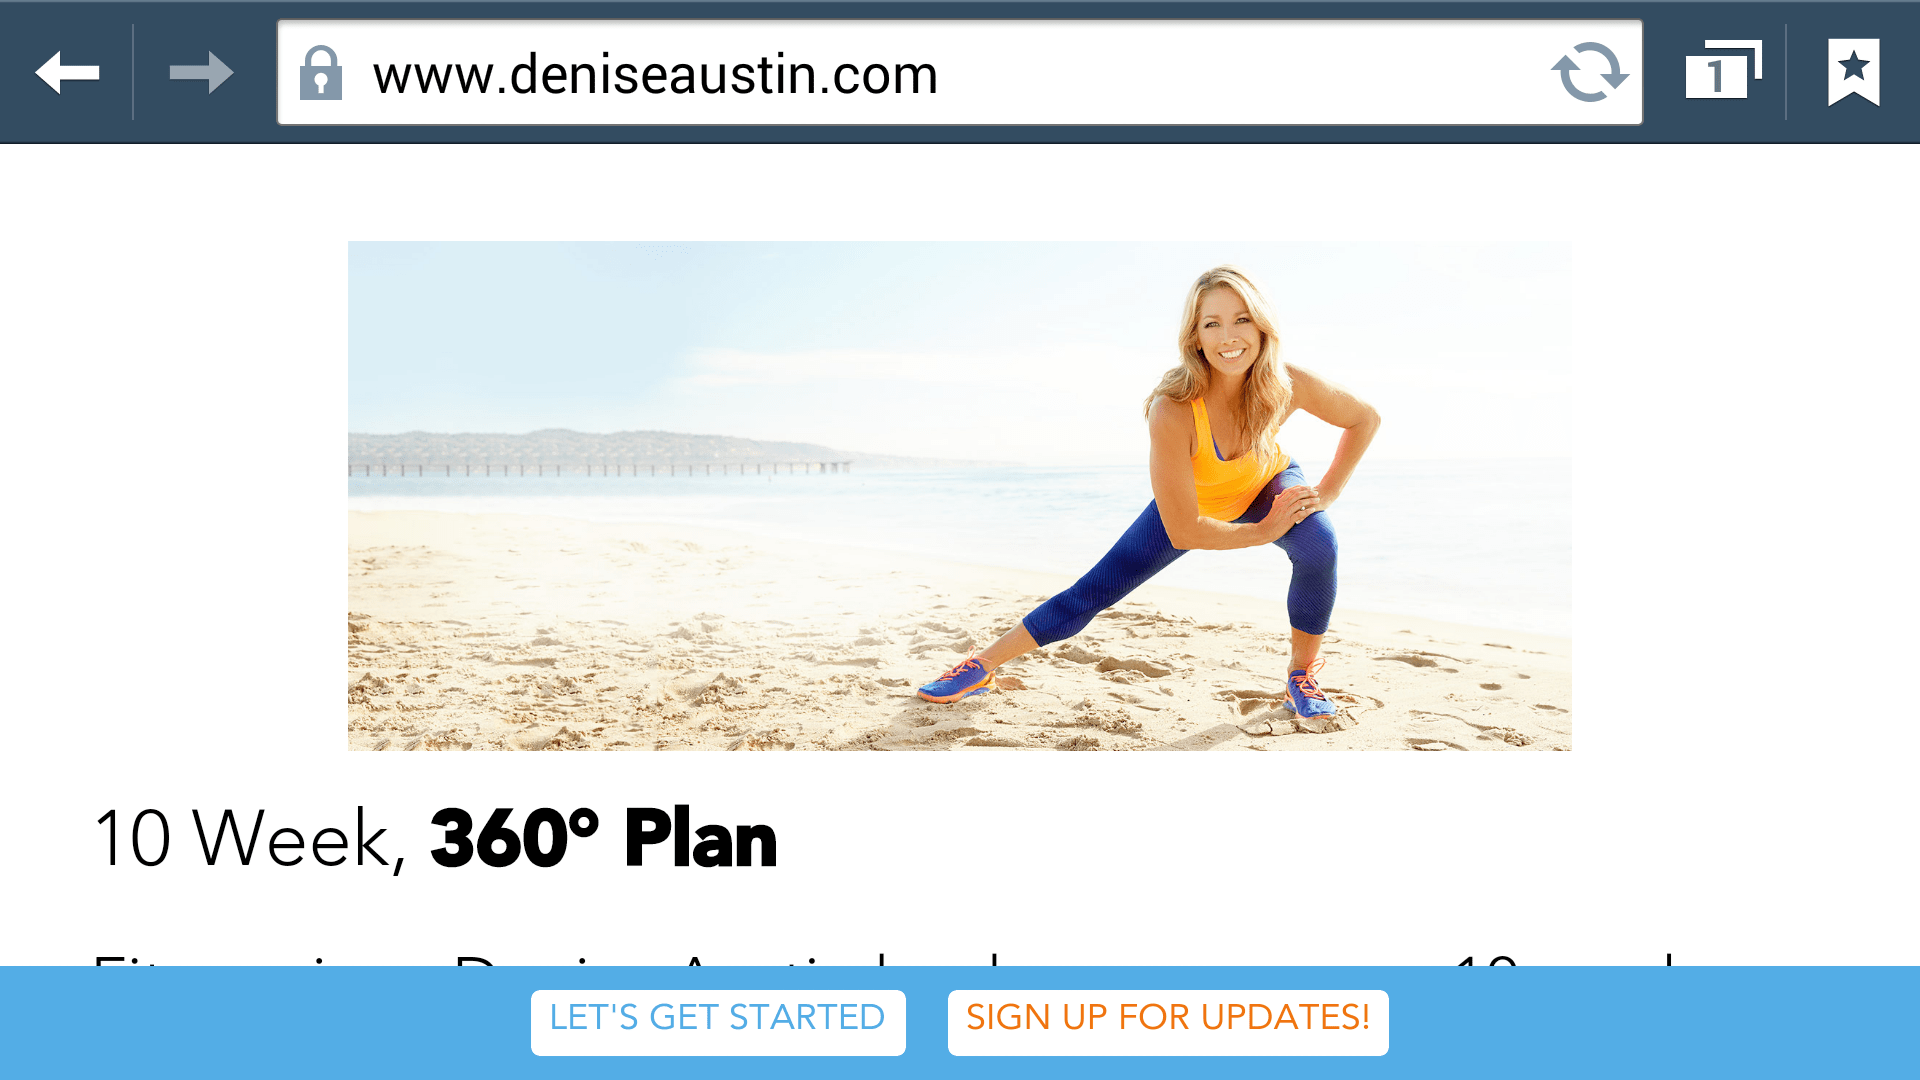 Fitness Icon Denise Austin Launches 10 Week Health And